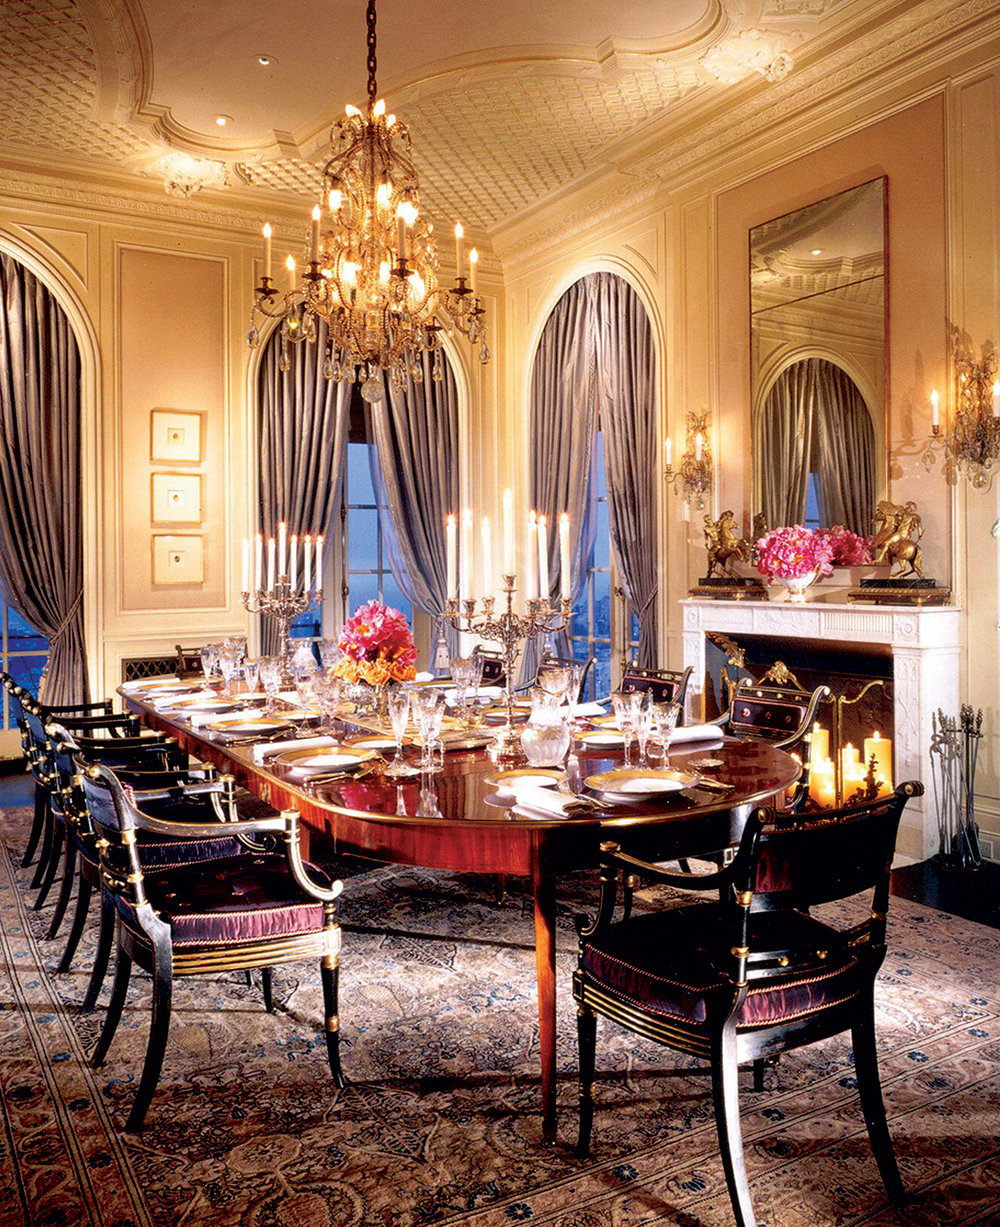 Dining_Room_gp-W.jpg